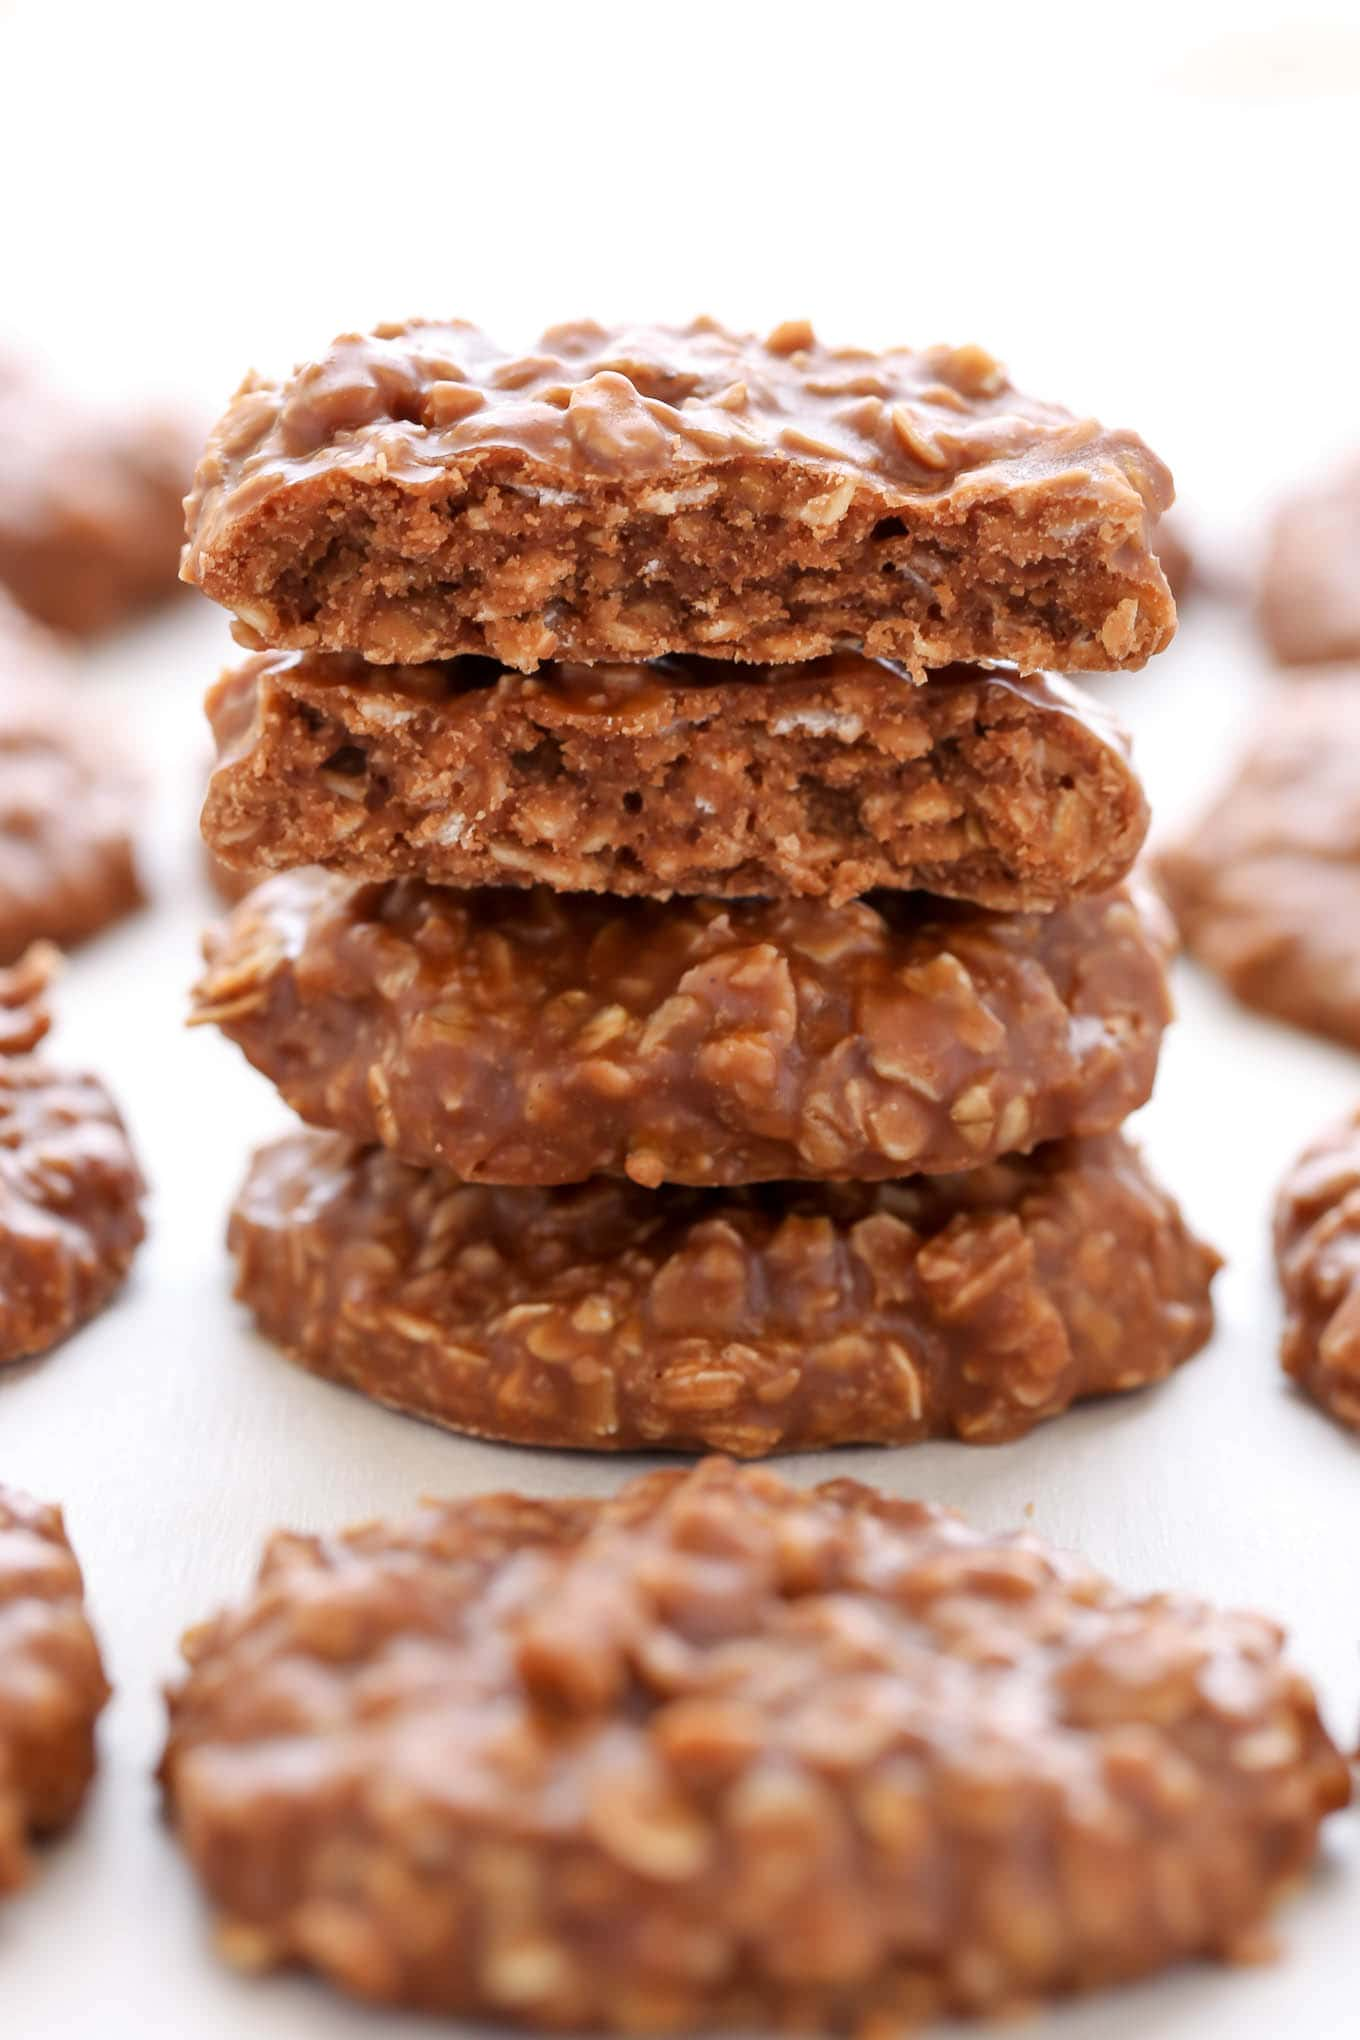 How to make peanut butter no bake cookies without oats